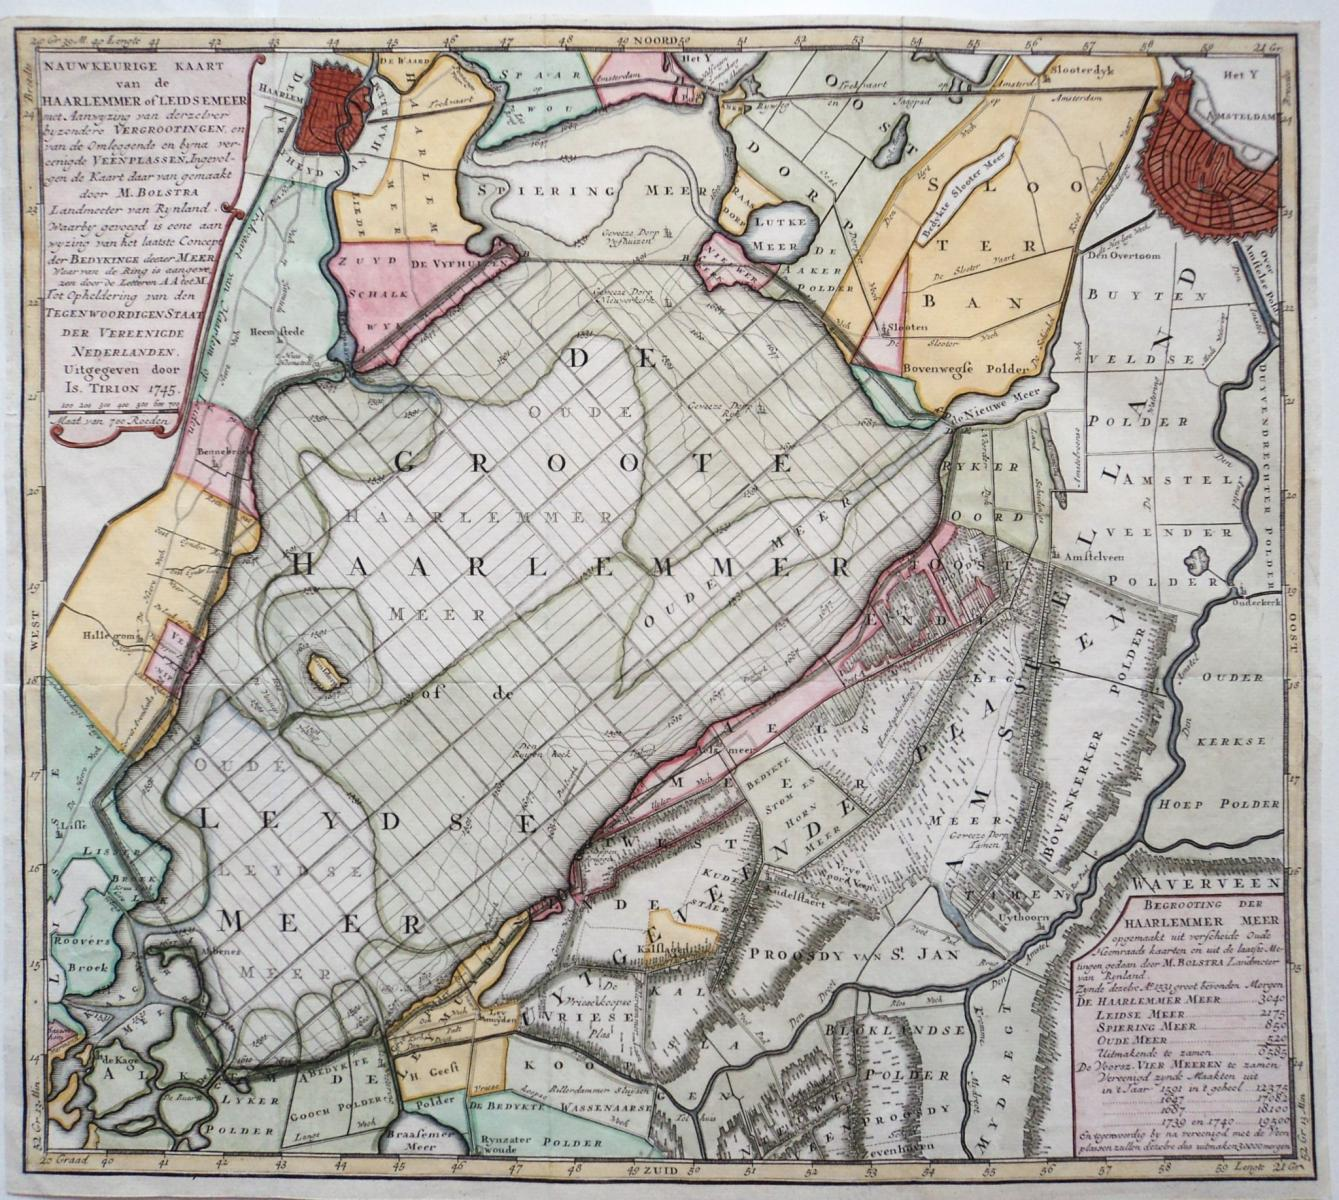 Map of Haarlemmermeer by Isaak Tirion in 1745